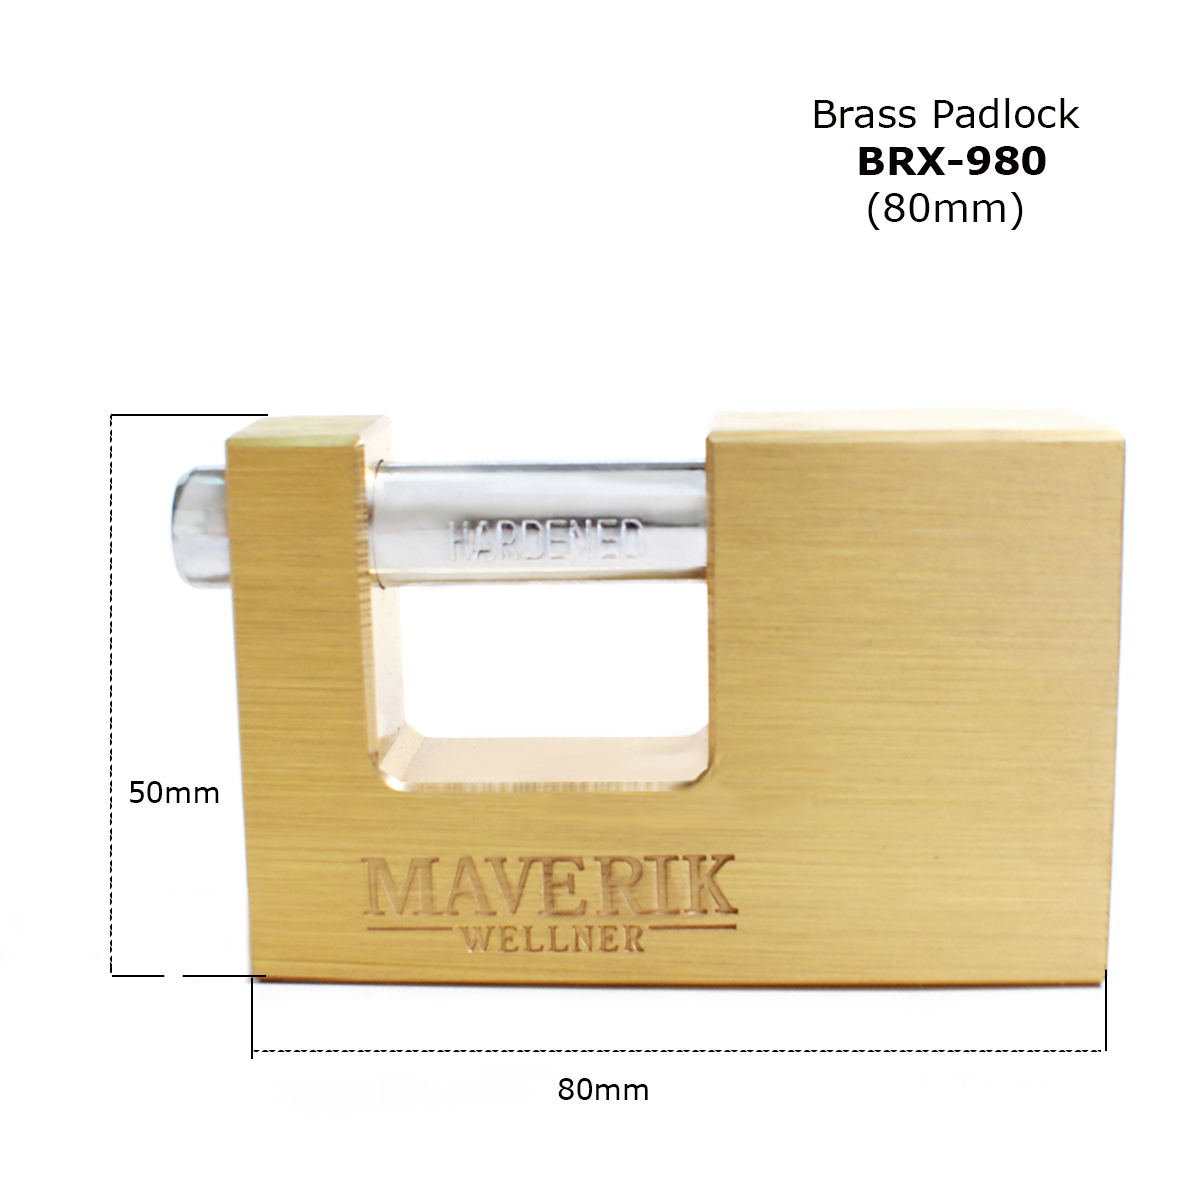 New arrival BRX-980 More strong & durable Solid brass padlock